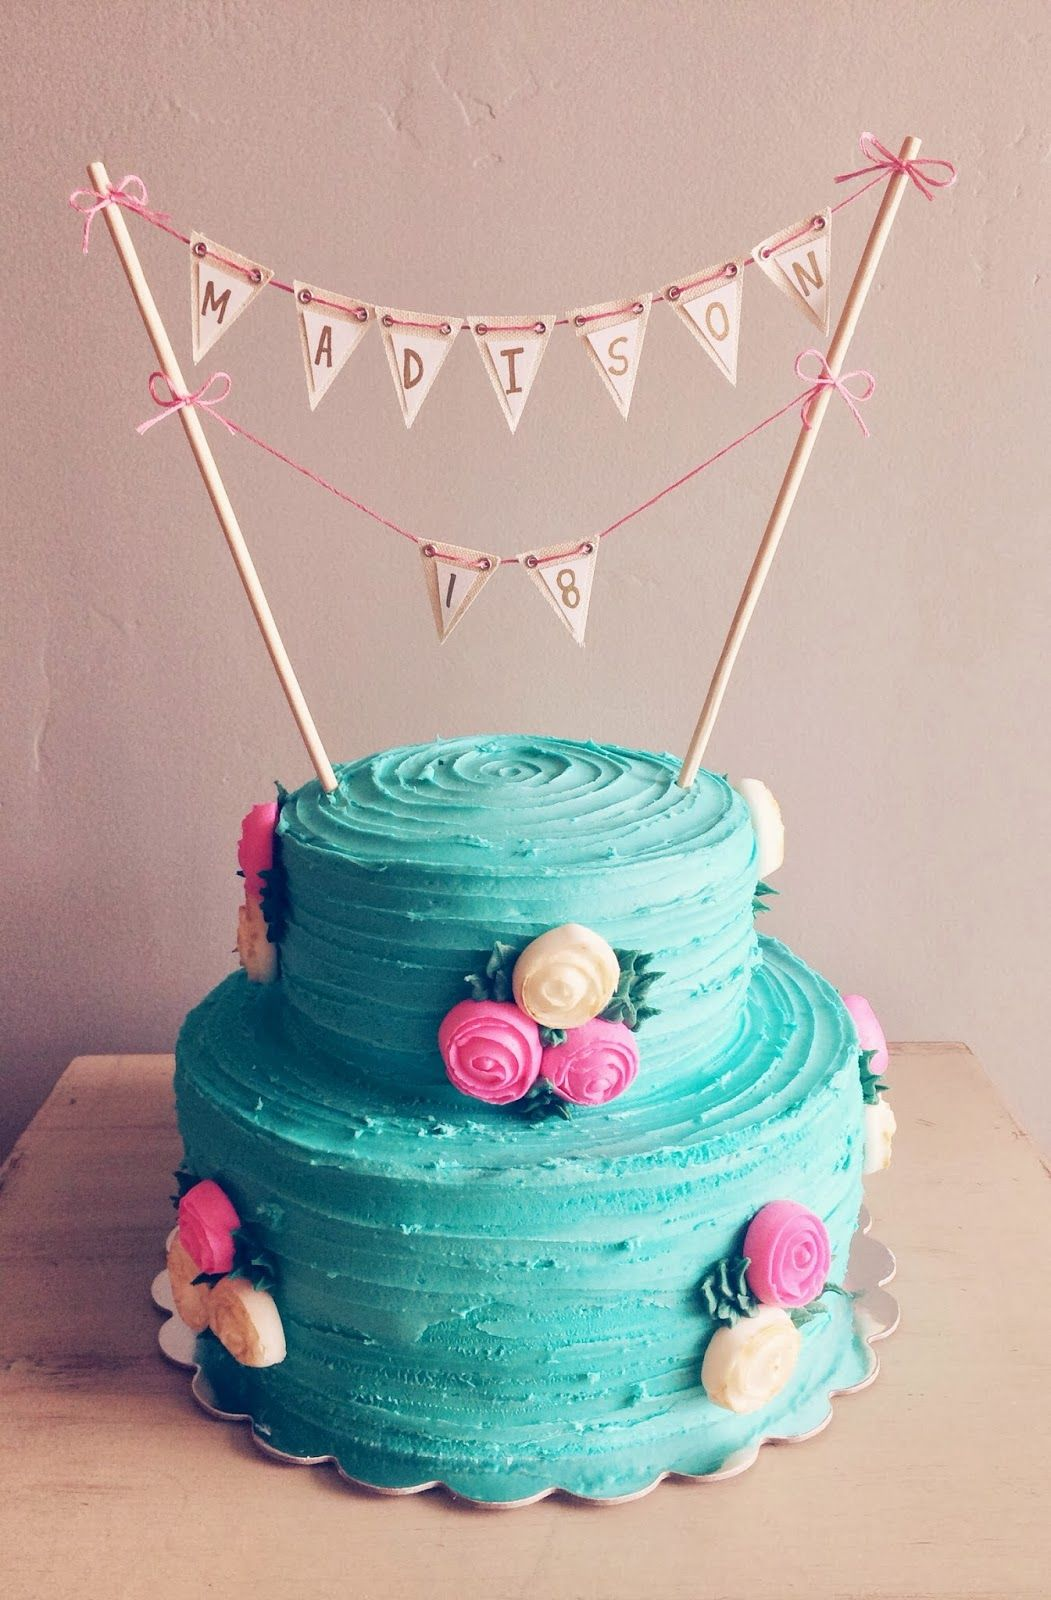 Simple Cake Design For Ladies : 18th Birthday cupcakes Pinterest Birthdays and Cake